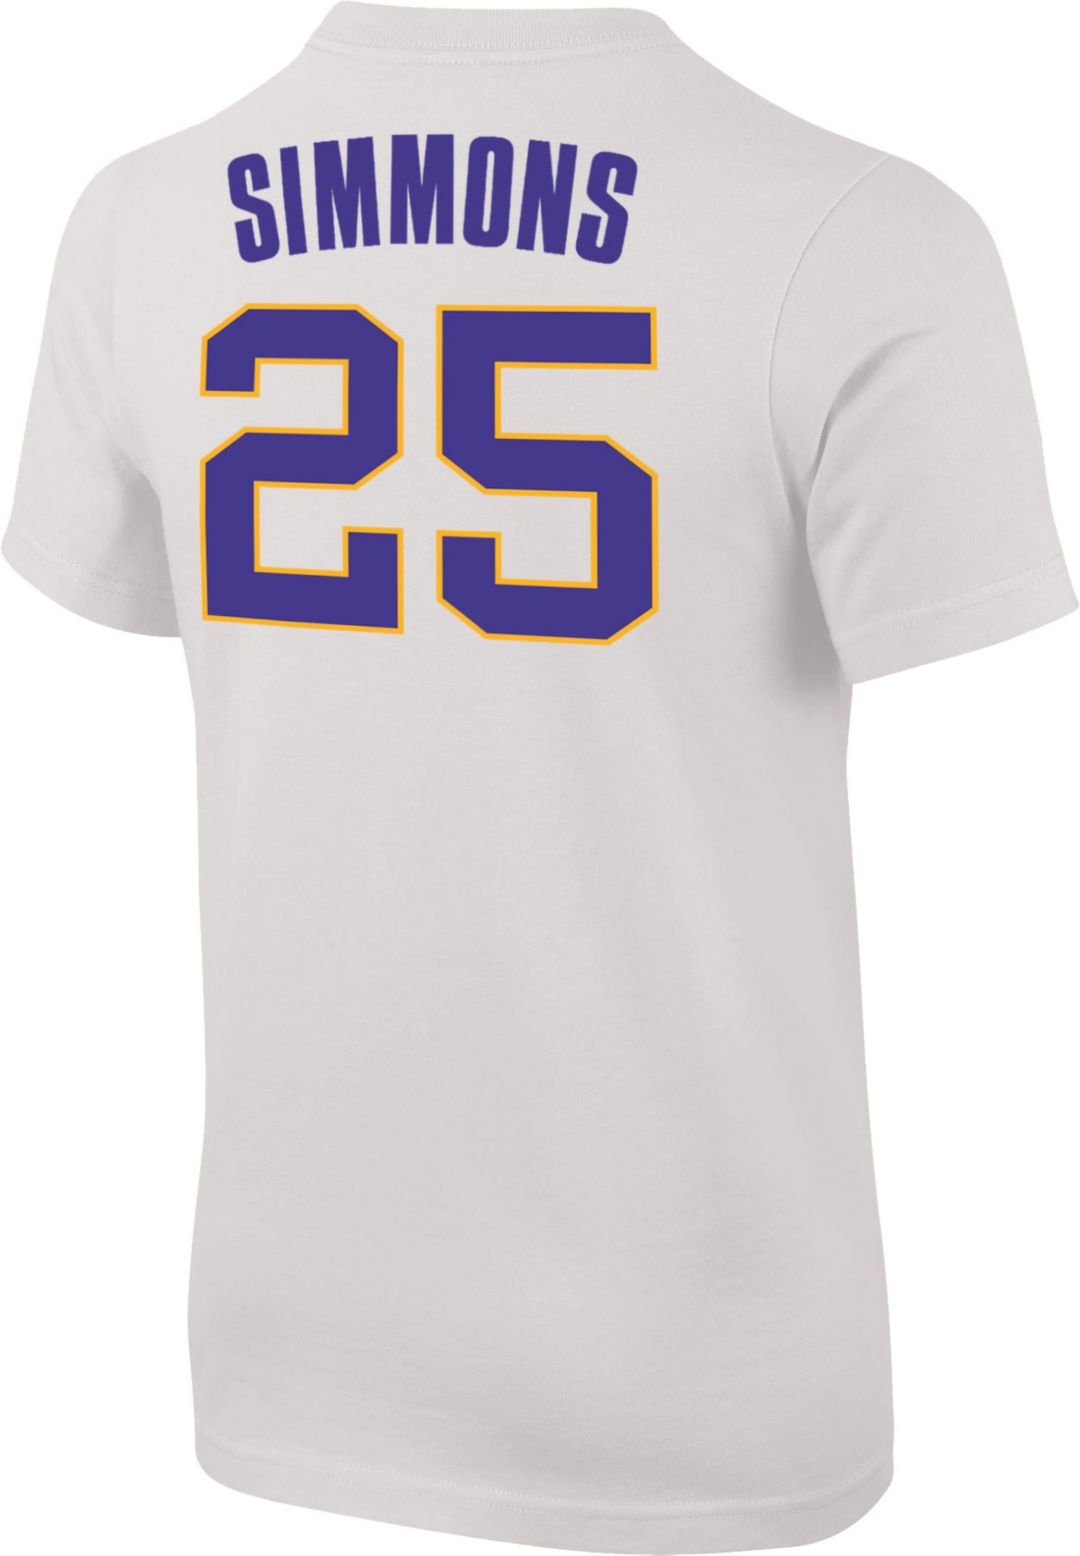 df575d5a0366 Nike Youth LSU Tigers Ben Simmons  25 Future Star Replica Basketball Jersey  White T-